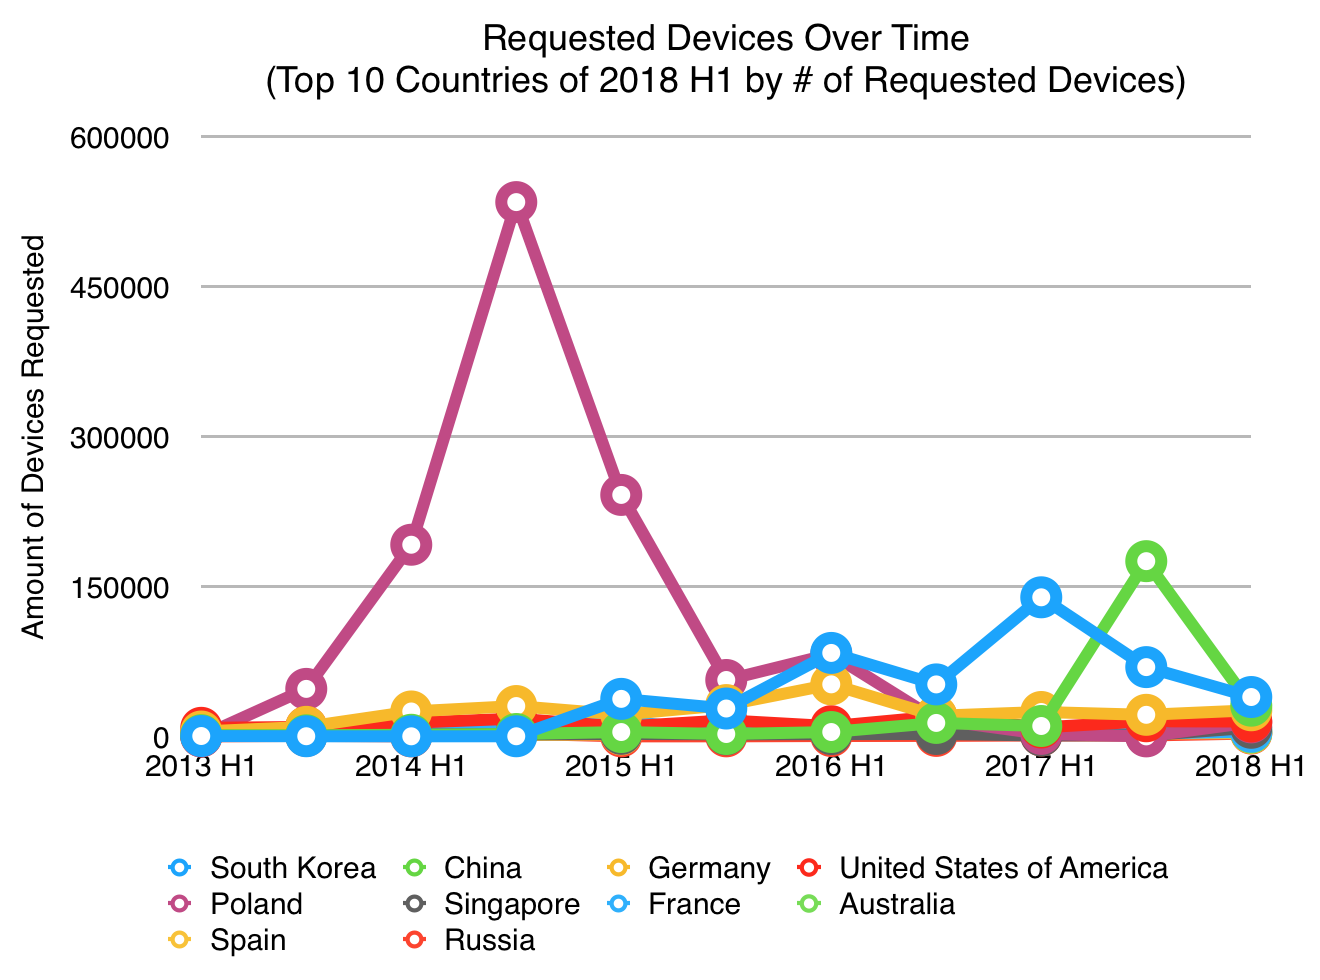 Poland requested over half a million devices in H2 of 2014! I had to go back and double check the original reports just to make sure. And, they only submitted 30 requests that period.